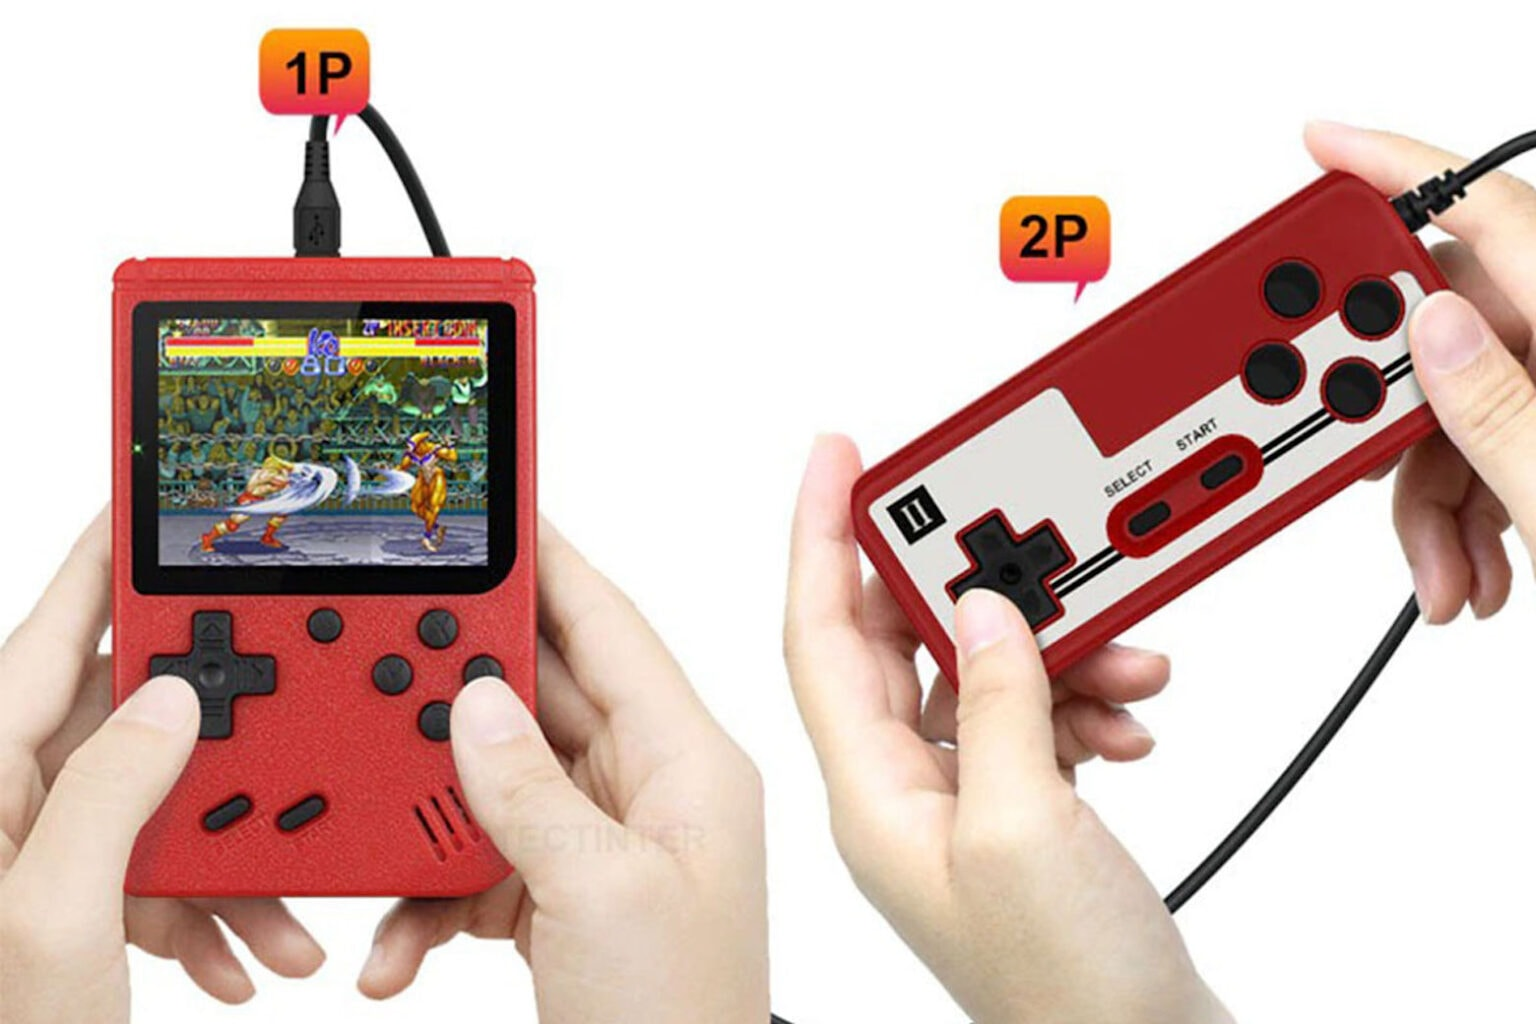 Grab this awesome handheld retro 8-bit game console.